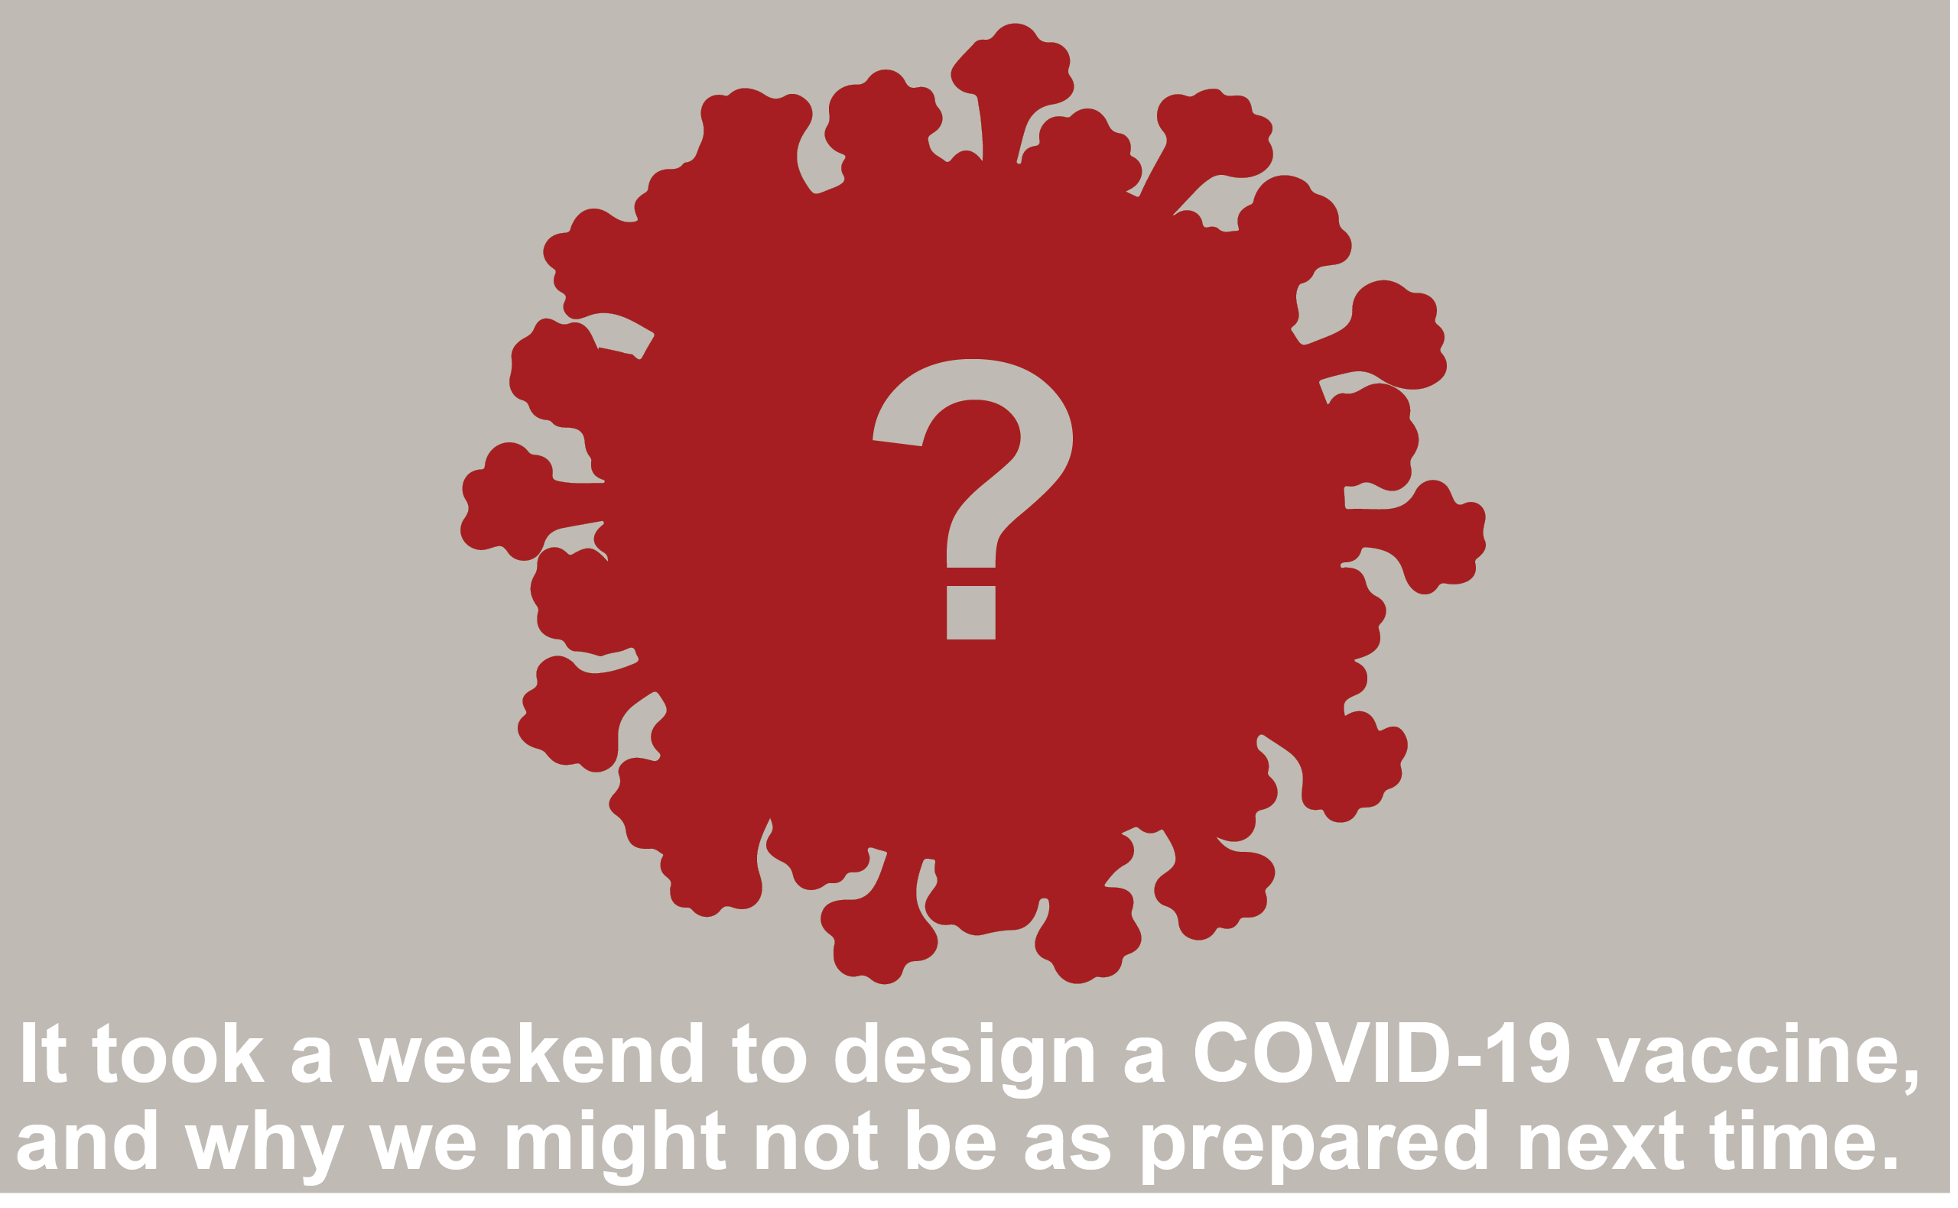 It took a weekend to design a COVID-19 vaccine, and why we might not be prepared next time. By Taylor Engdahl